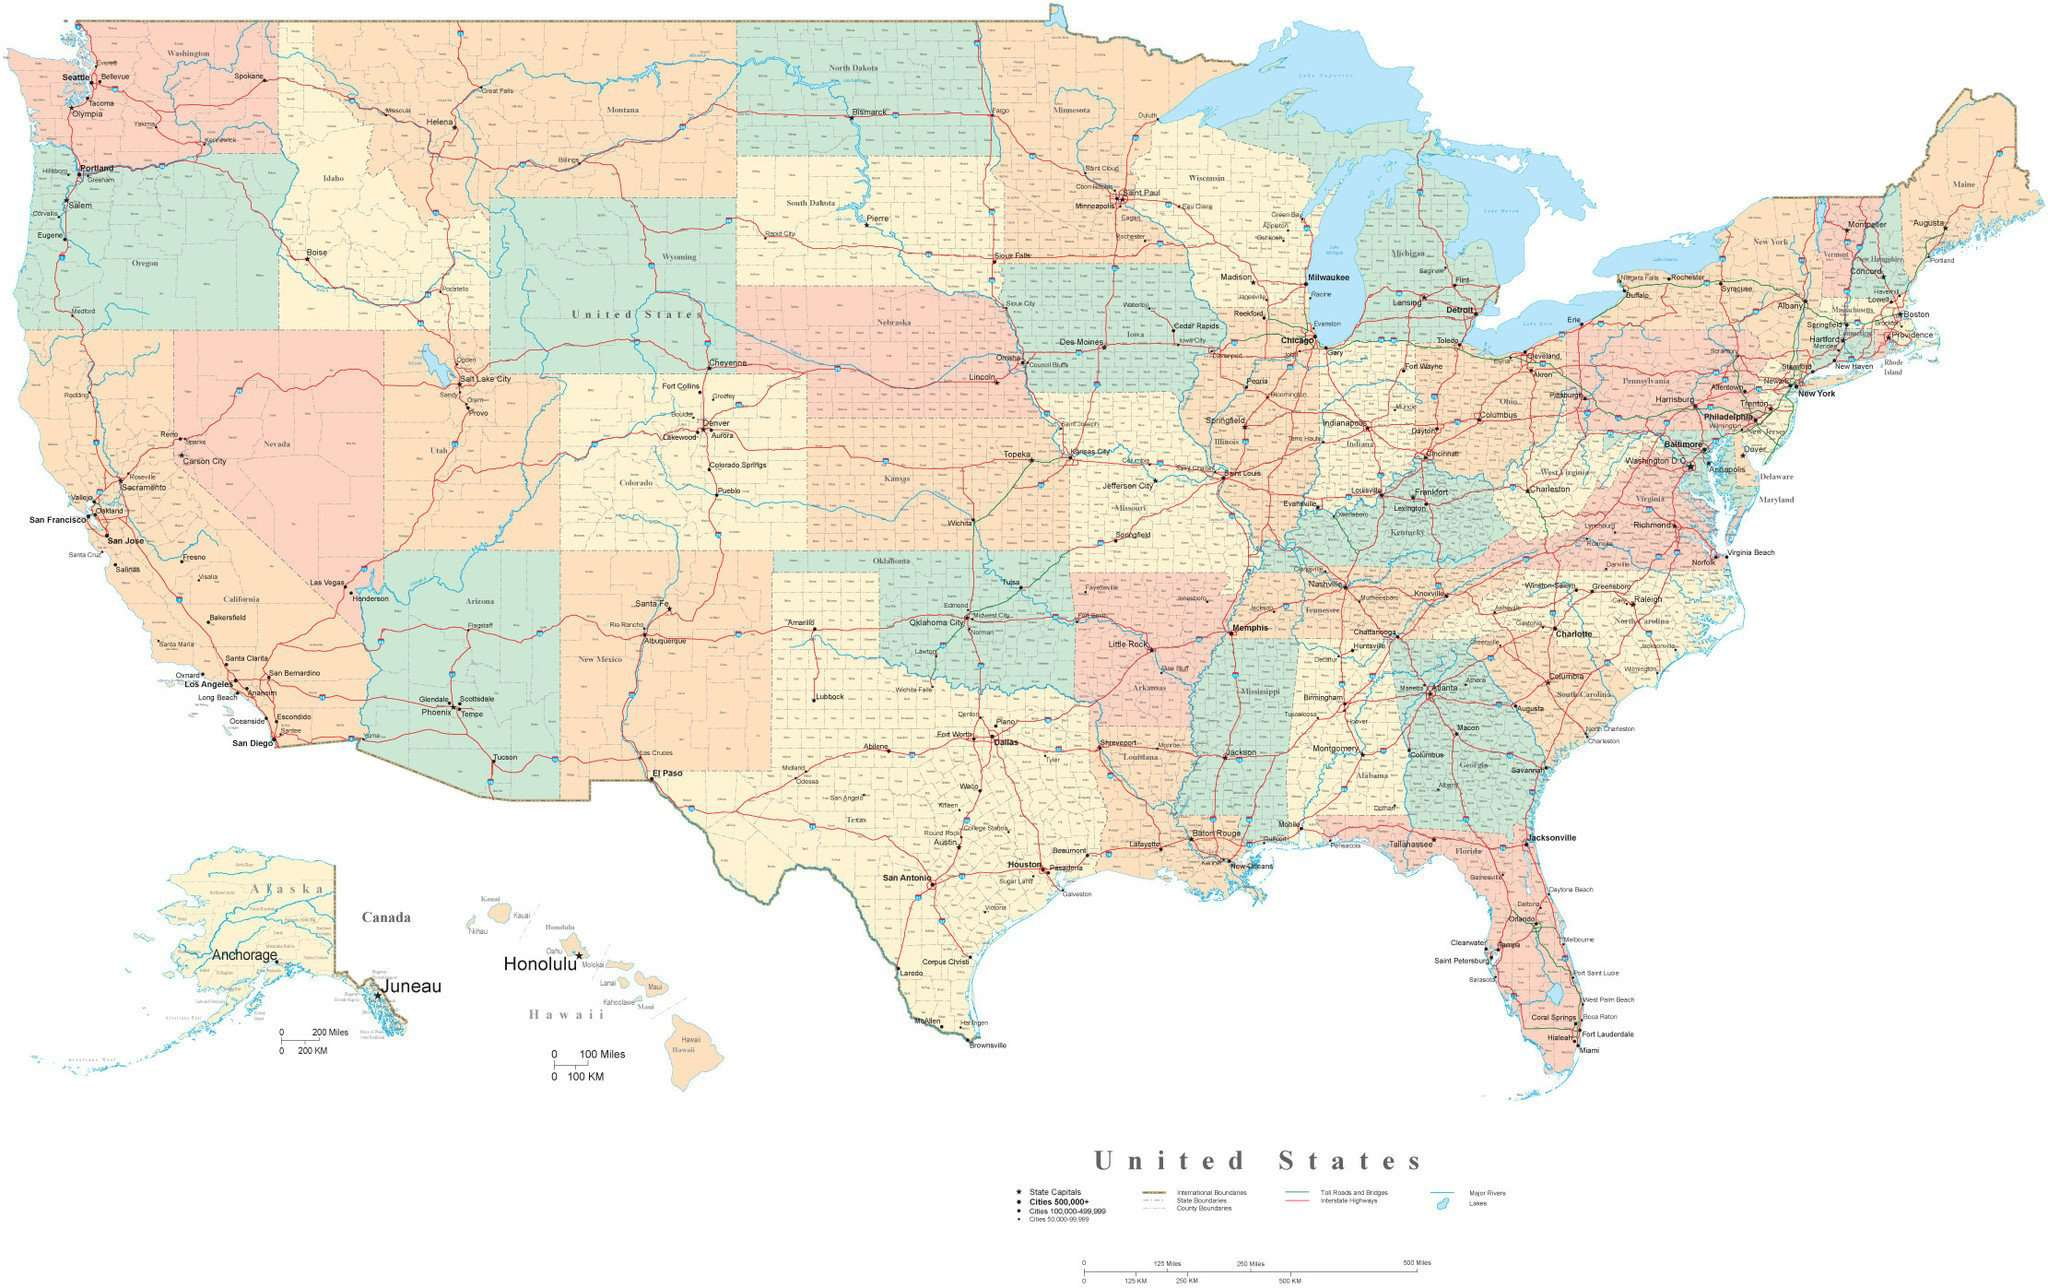 Poster Size USA Map with Counties, Cities, Interstates, and Water Features  - Platte Carre Projection